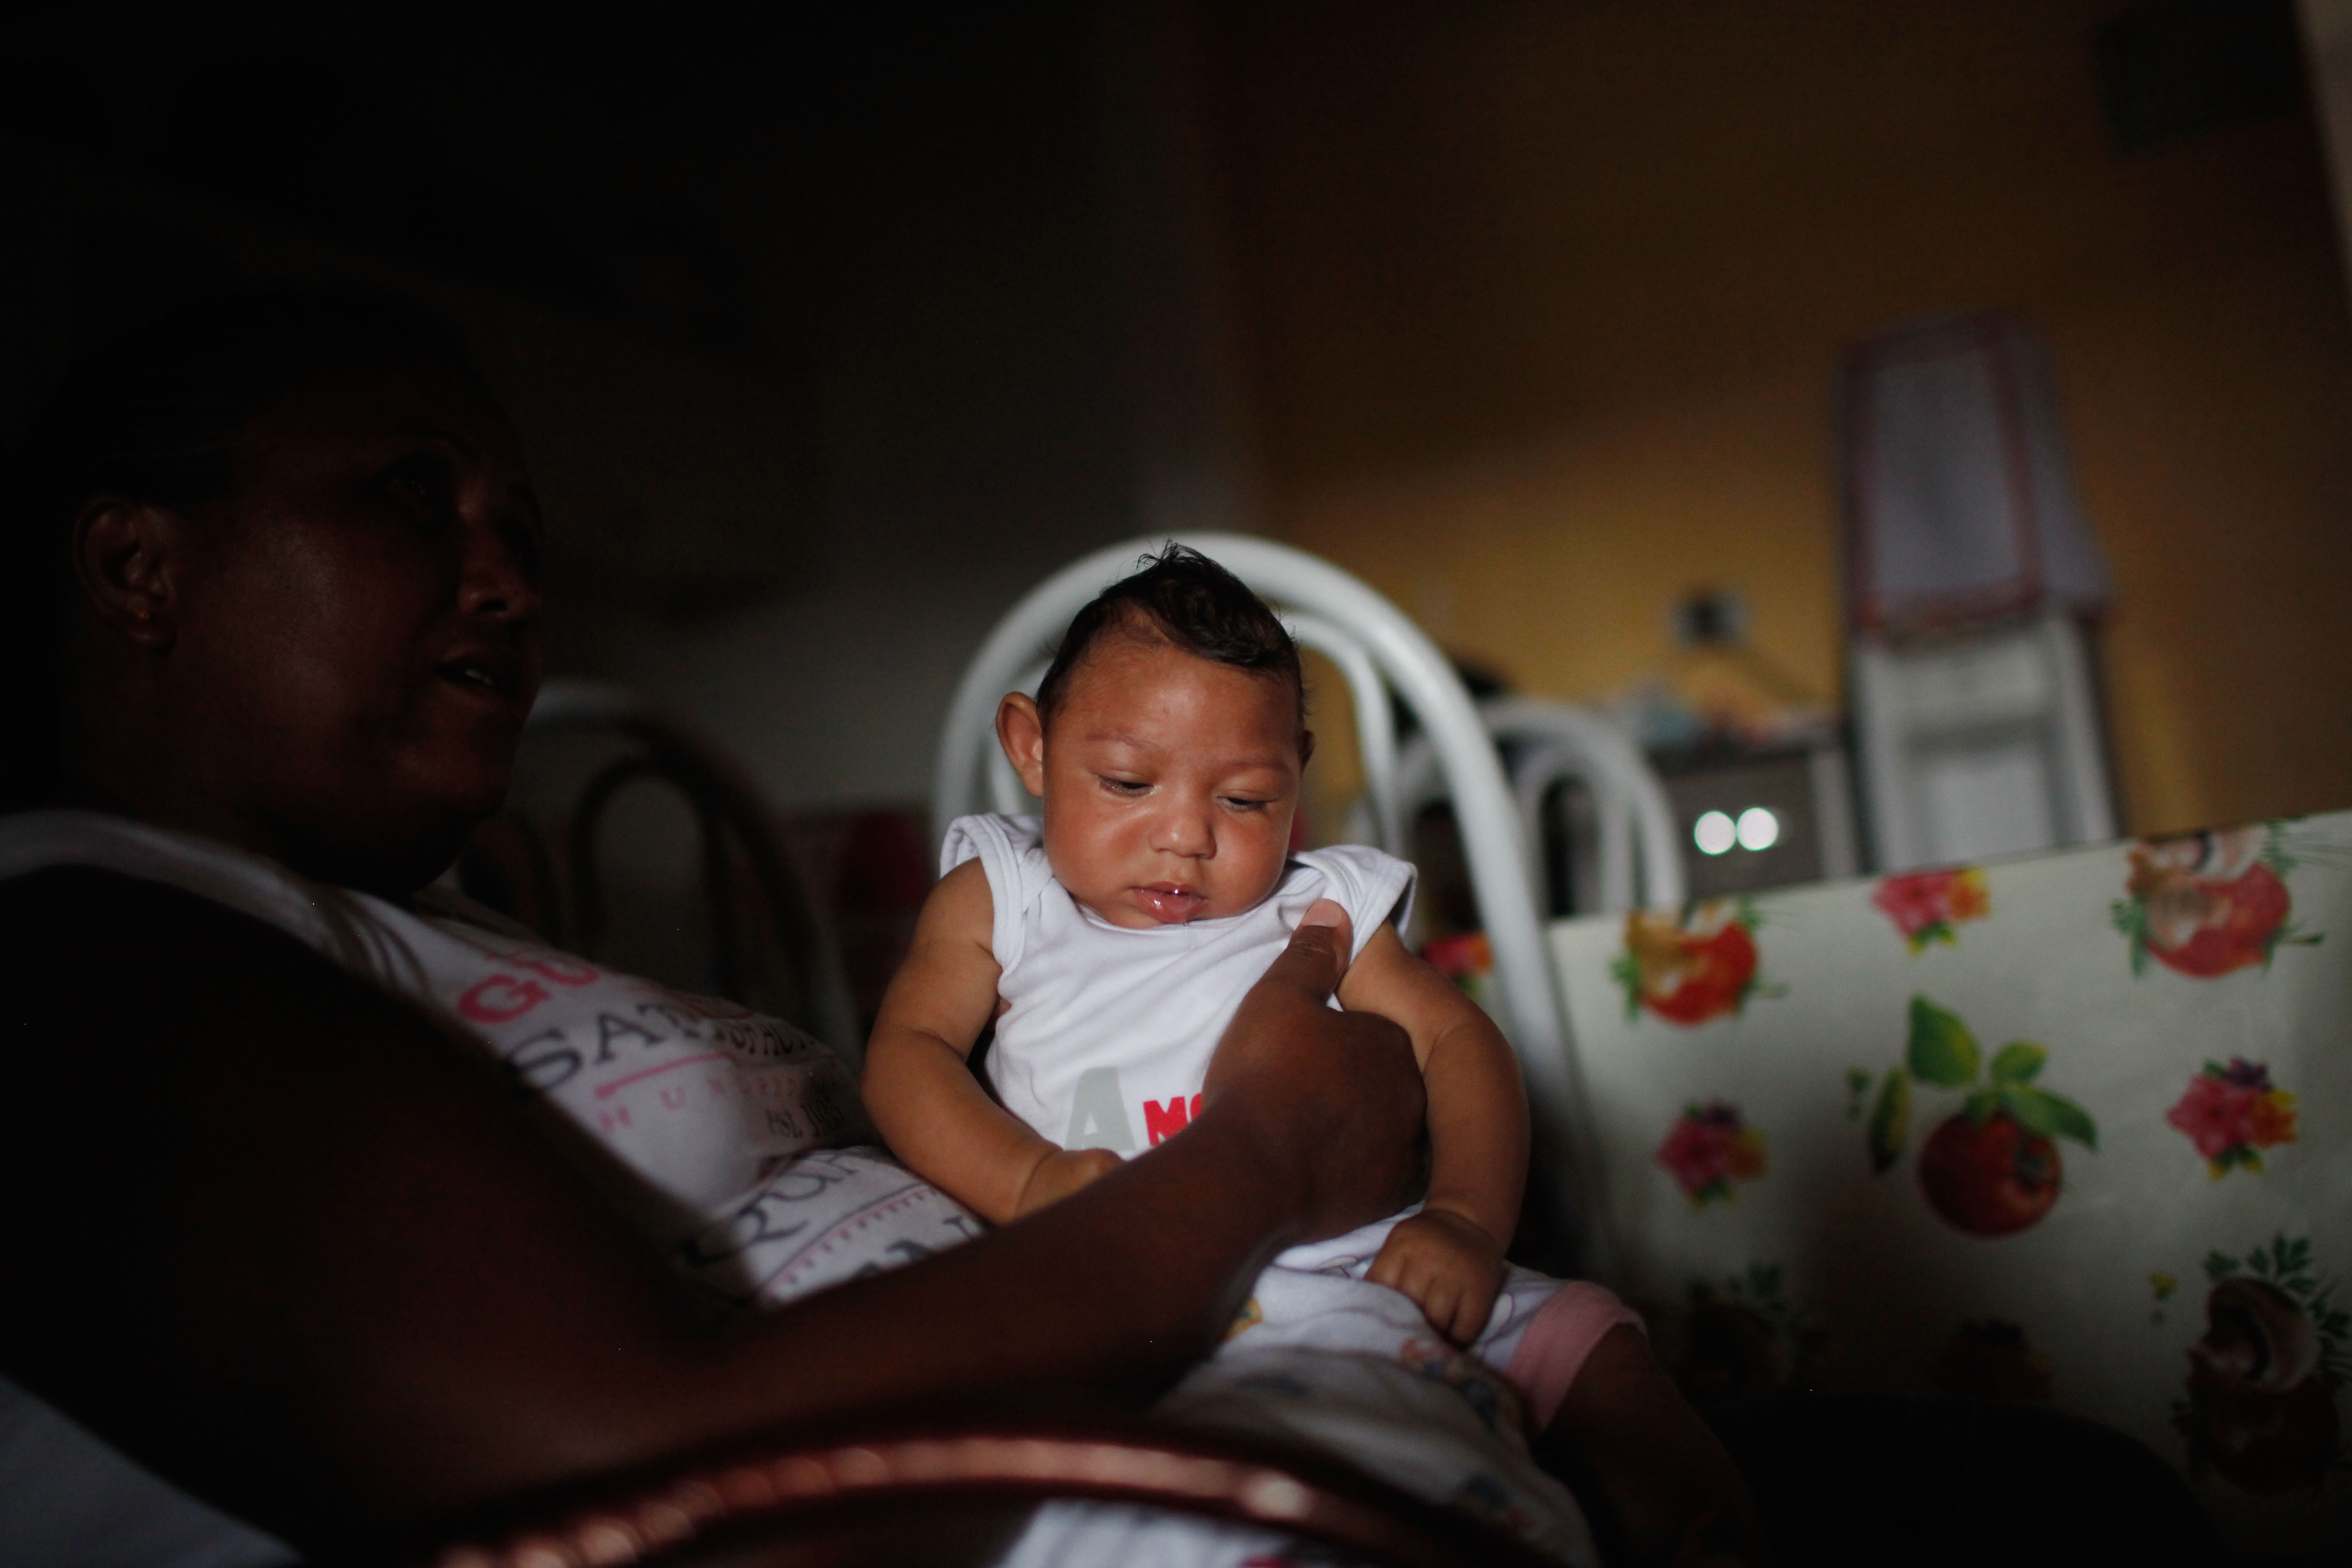 Alice Vitoria Gomes Bezerra, 3 months old, who has microcephaly, is held by her mother Nadja Cristina Gomes Bezerra in Recife, Brazil, on Jan. 31, 2016.